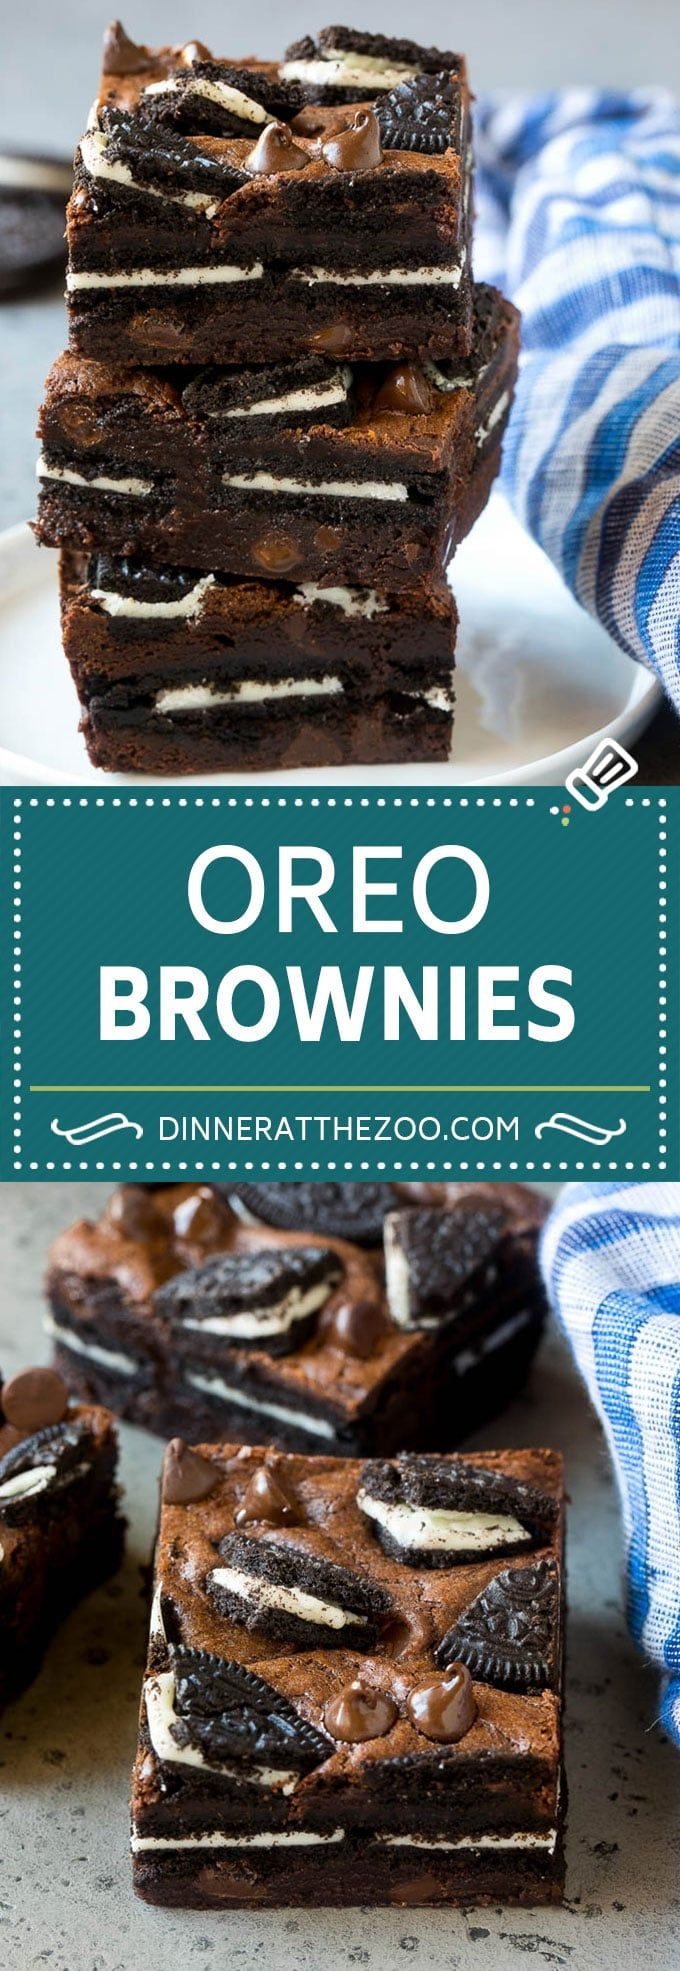 Oreo Brownies - Dinner at the Zoo